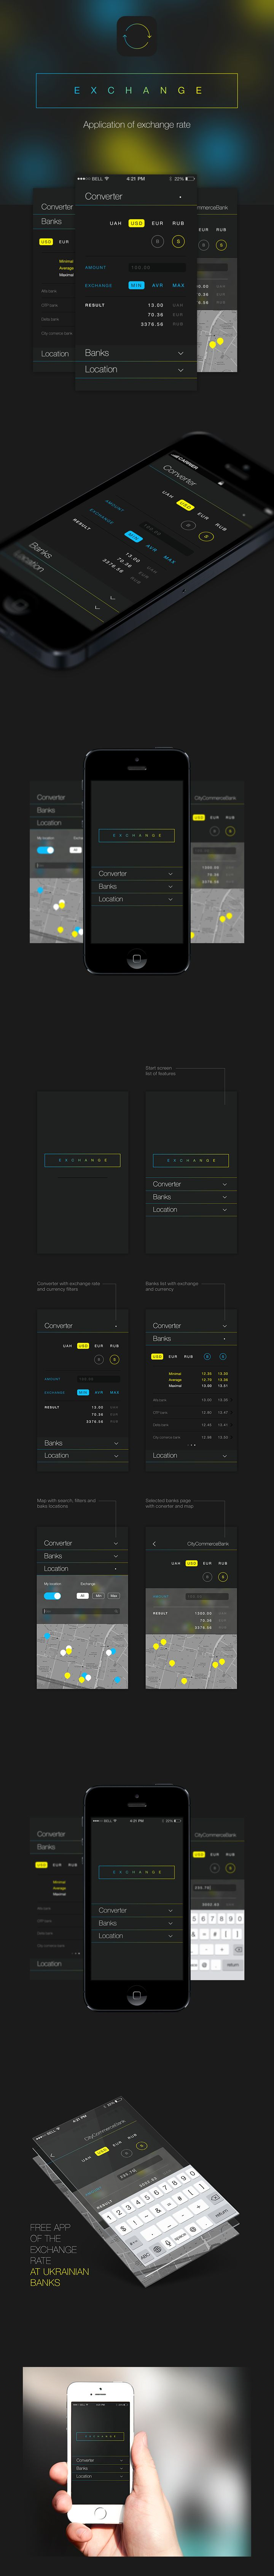 eXCHANGE - Free iOS app of the exchange rate at Ukrainian banks by Irene Shkarovska #gui #ui #ux